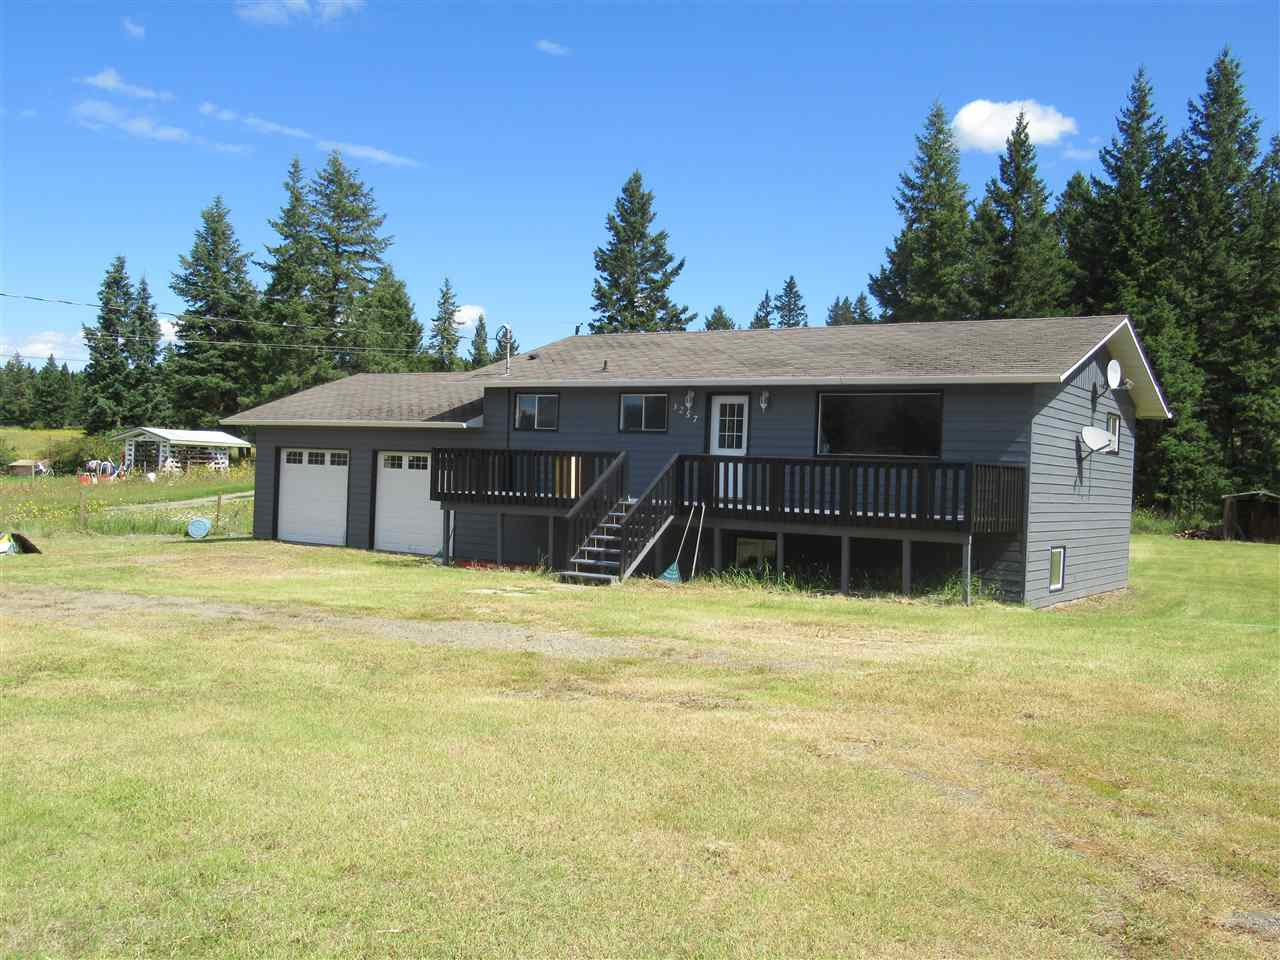 Main Photo: 3257 HINSCHE Road in Williams Lake: Williams Lake - Rural East House for sale (Williams Lake (Zone 27))  : MLS®# R2477340